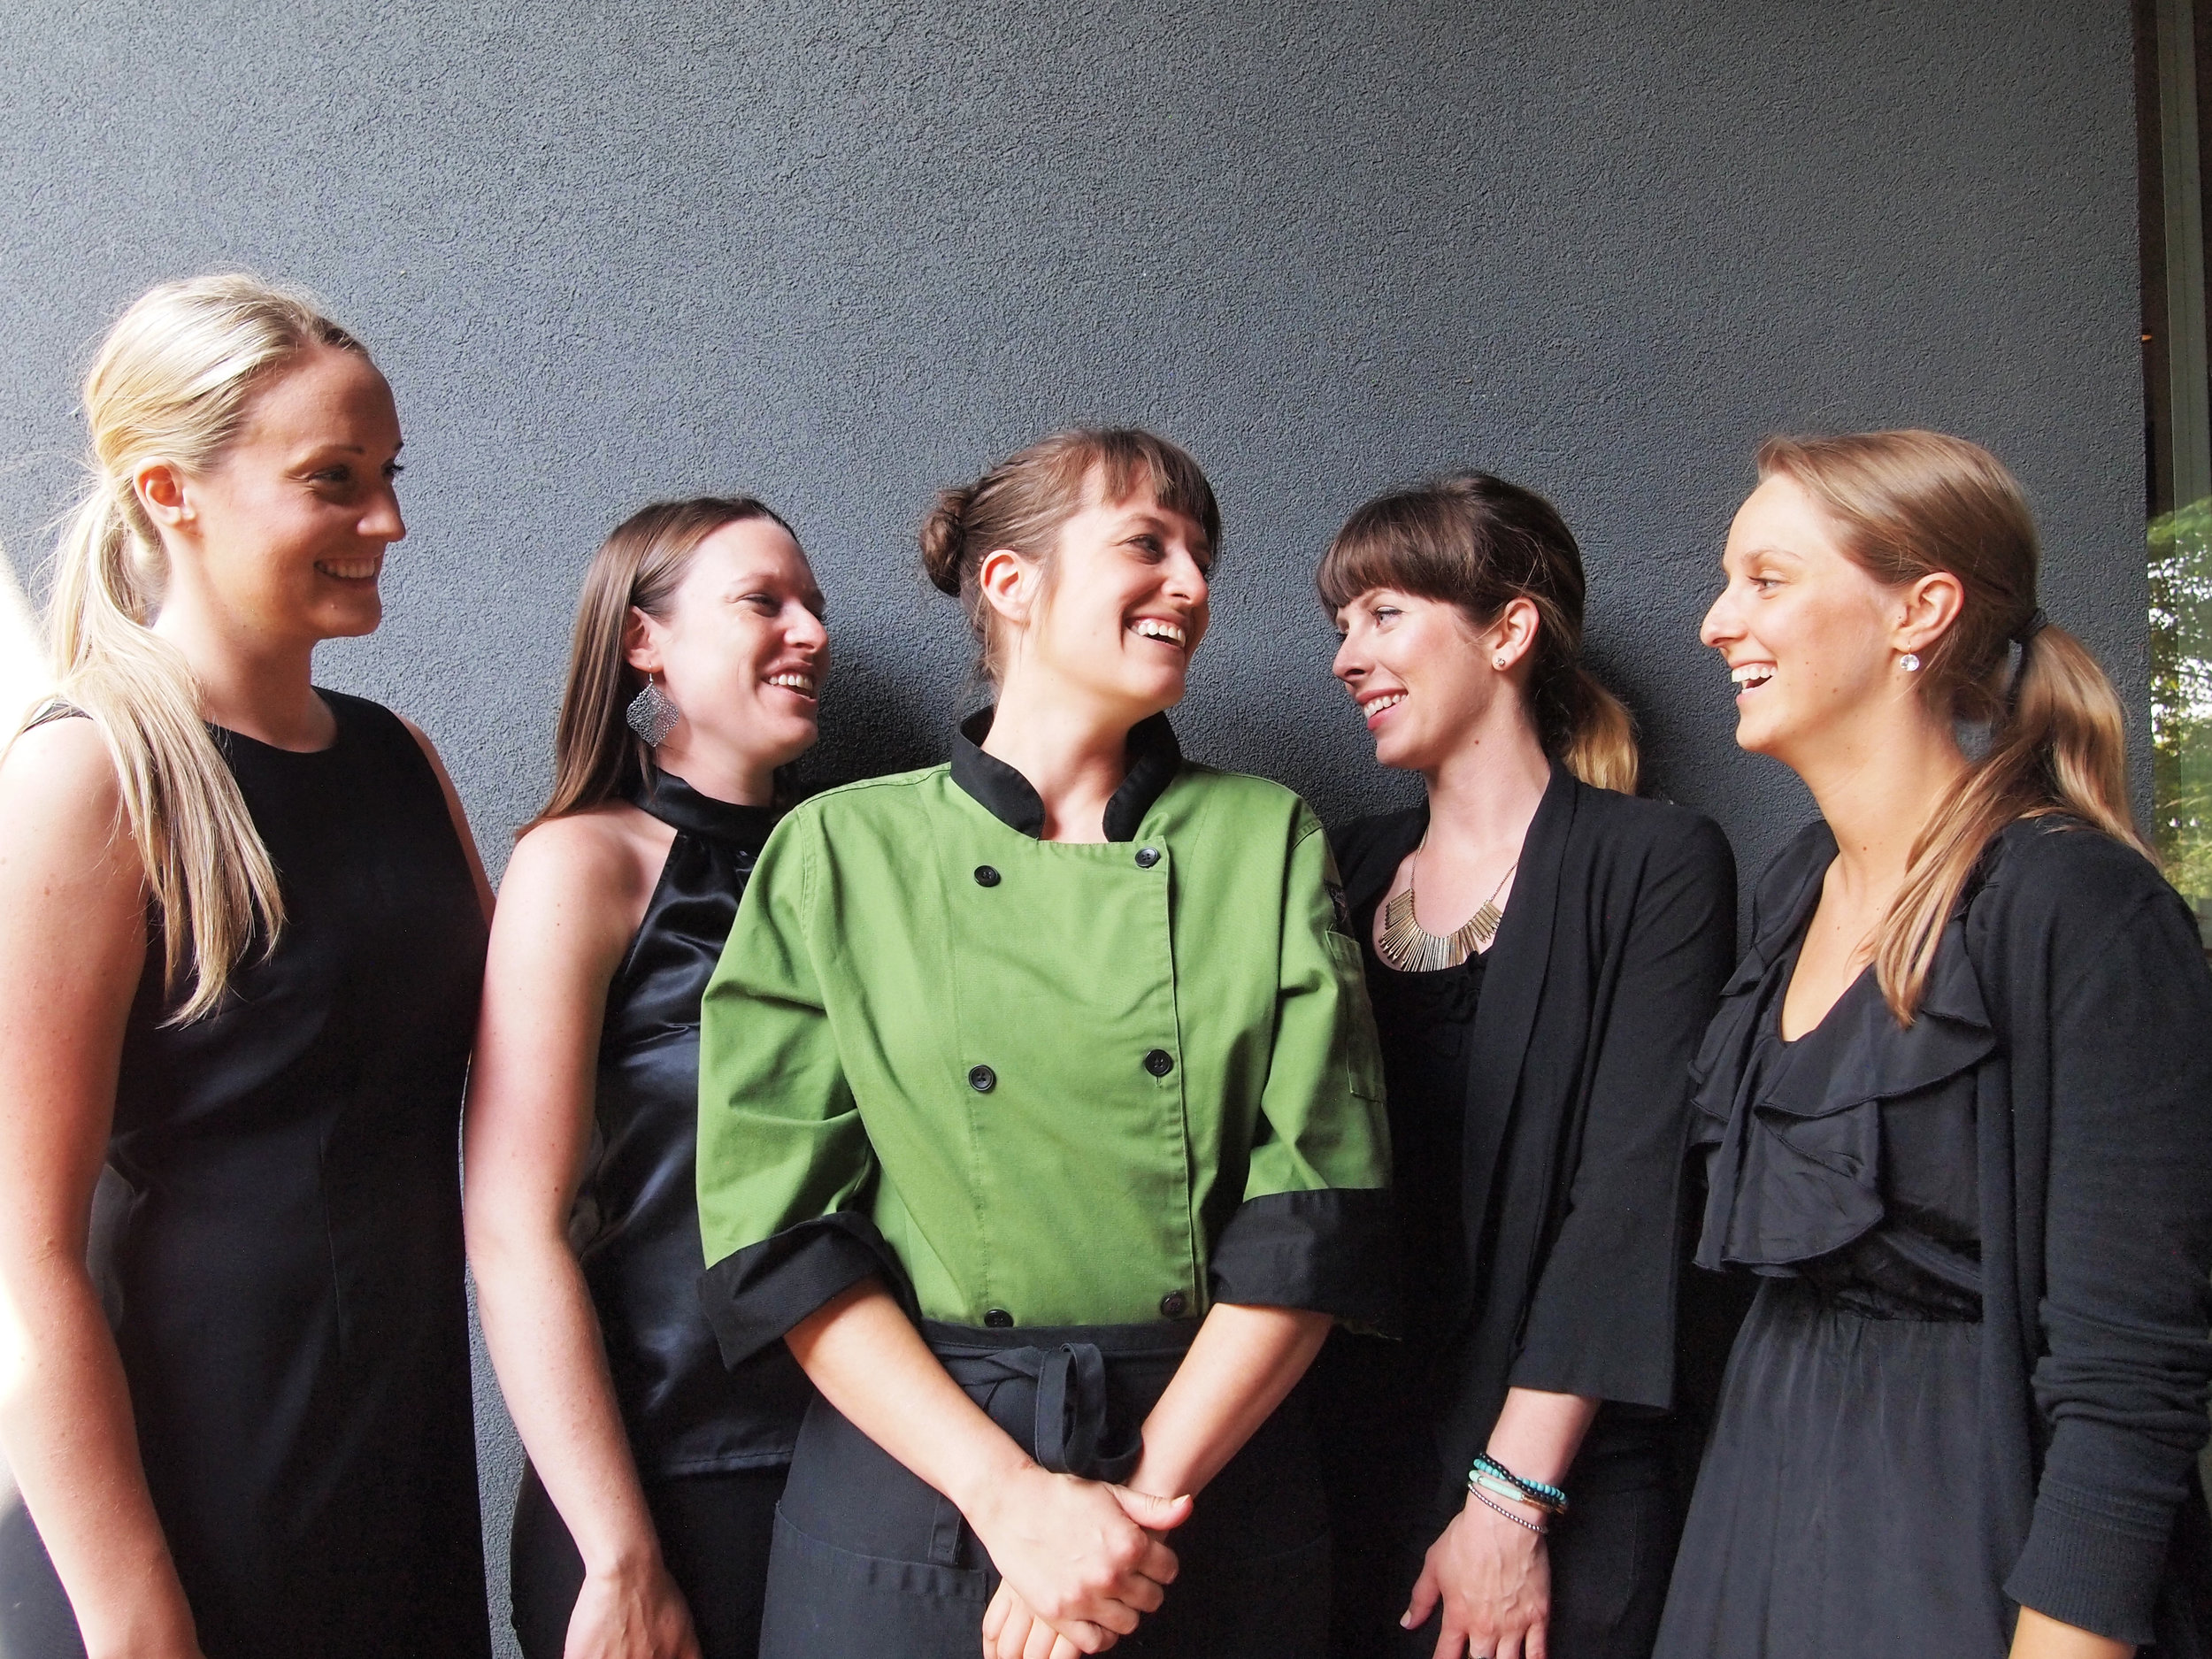 Look for these beautiful gals at your next event! From right to left: Stephanie WIlliams, Becky Stephenson, Chef Yoda, Nicole Kirkpatrick and Heather Nichols.